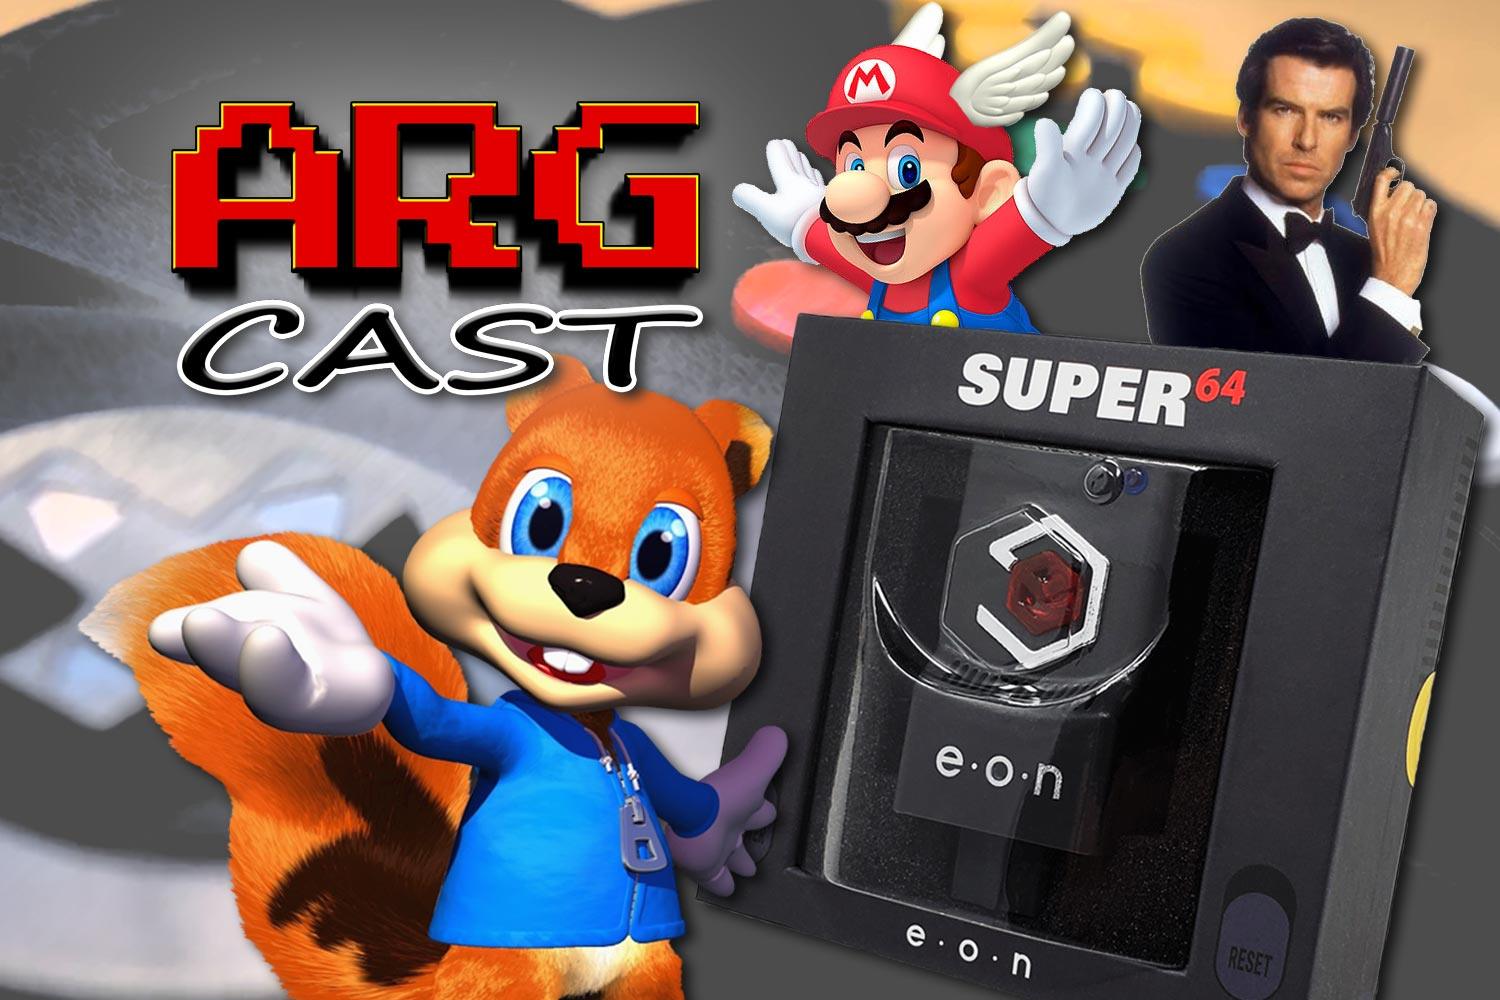 ARGcast #169: Back to the N64 with the EON Super 64!